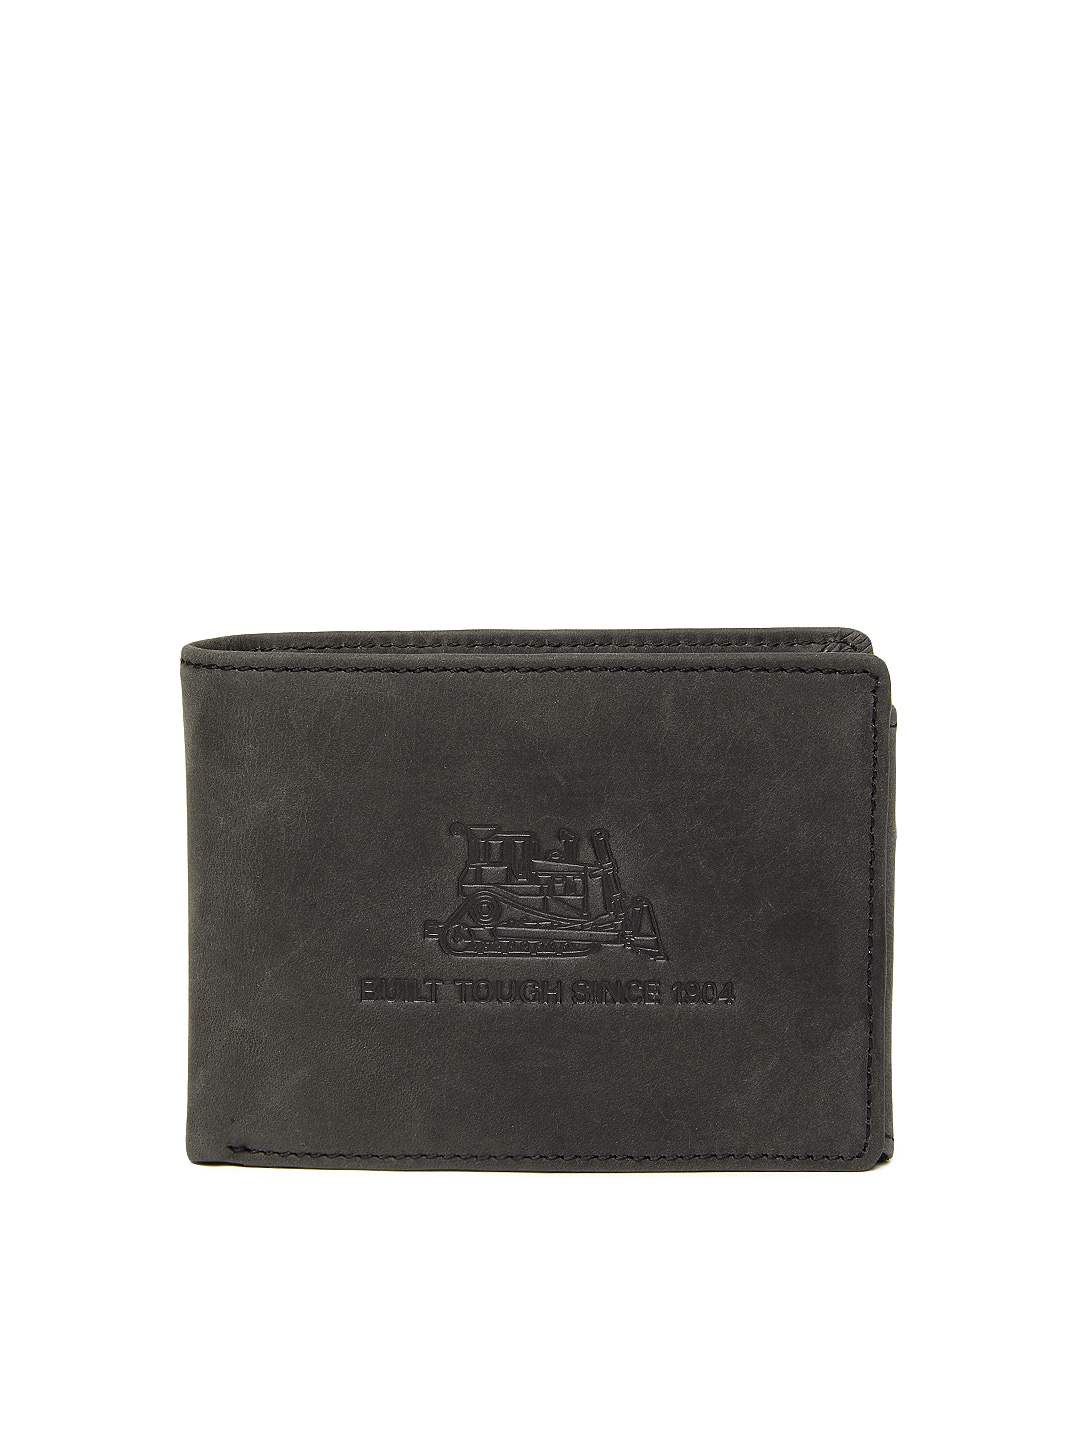 e8ead1f4a4 Cat 80602-81 Men Brown Leather Wallet - Best Price in India | priceiq.in